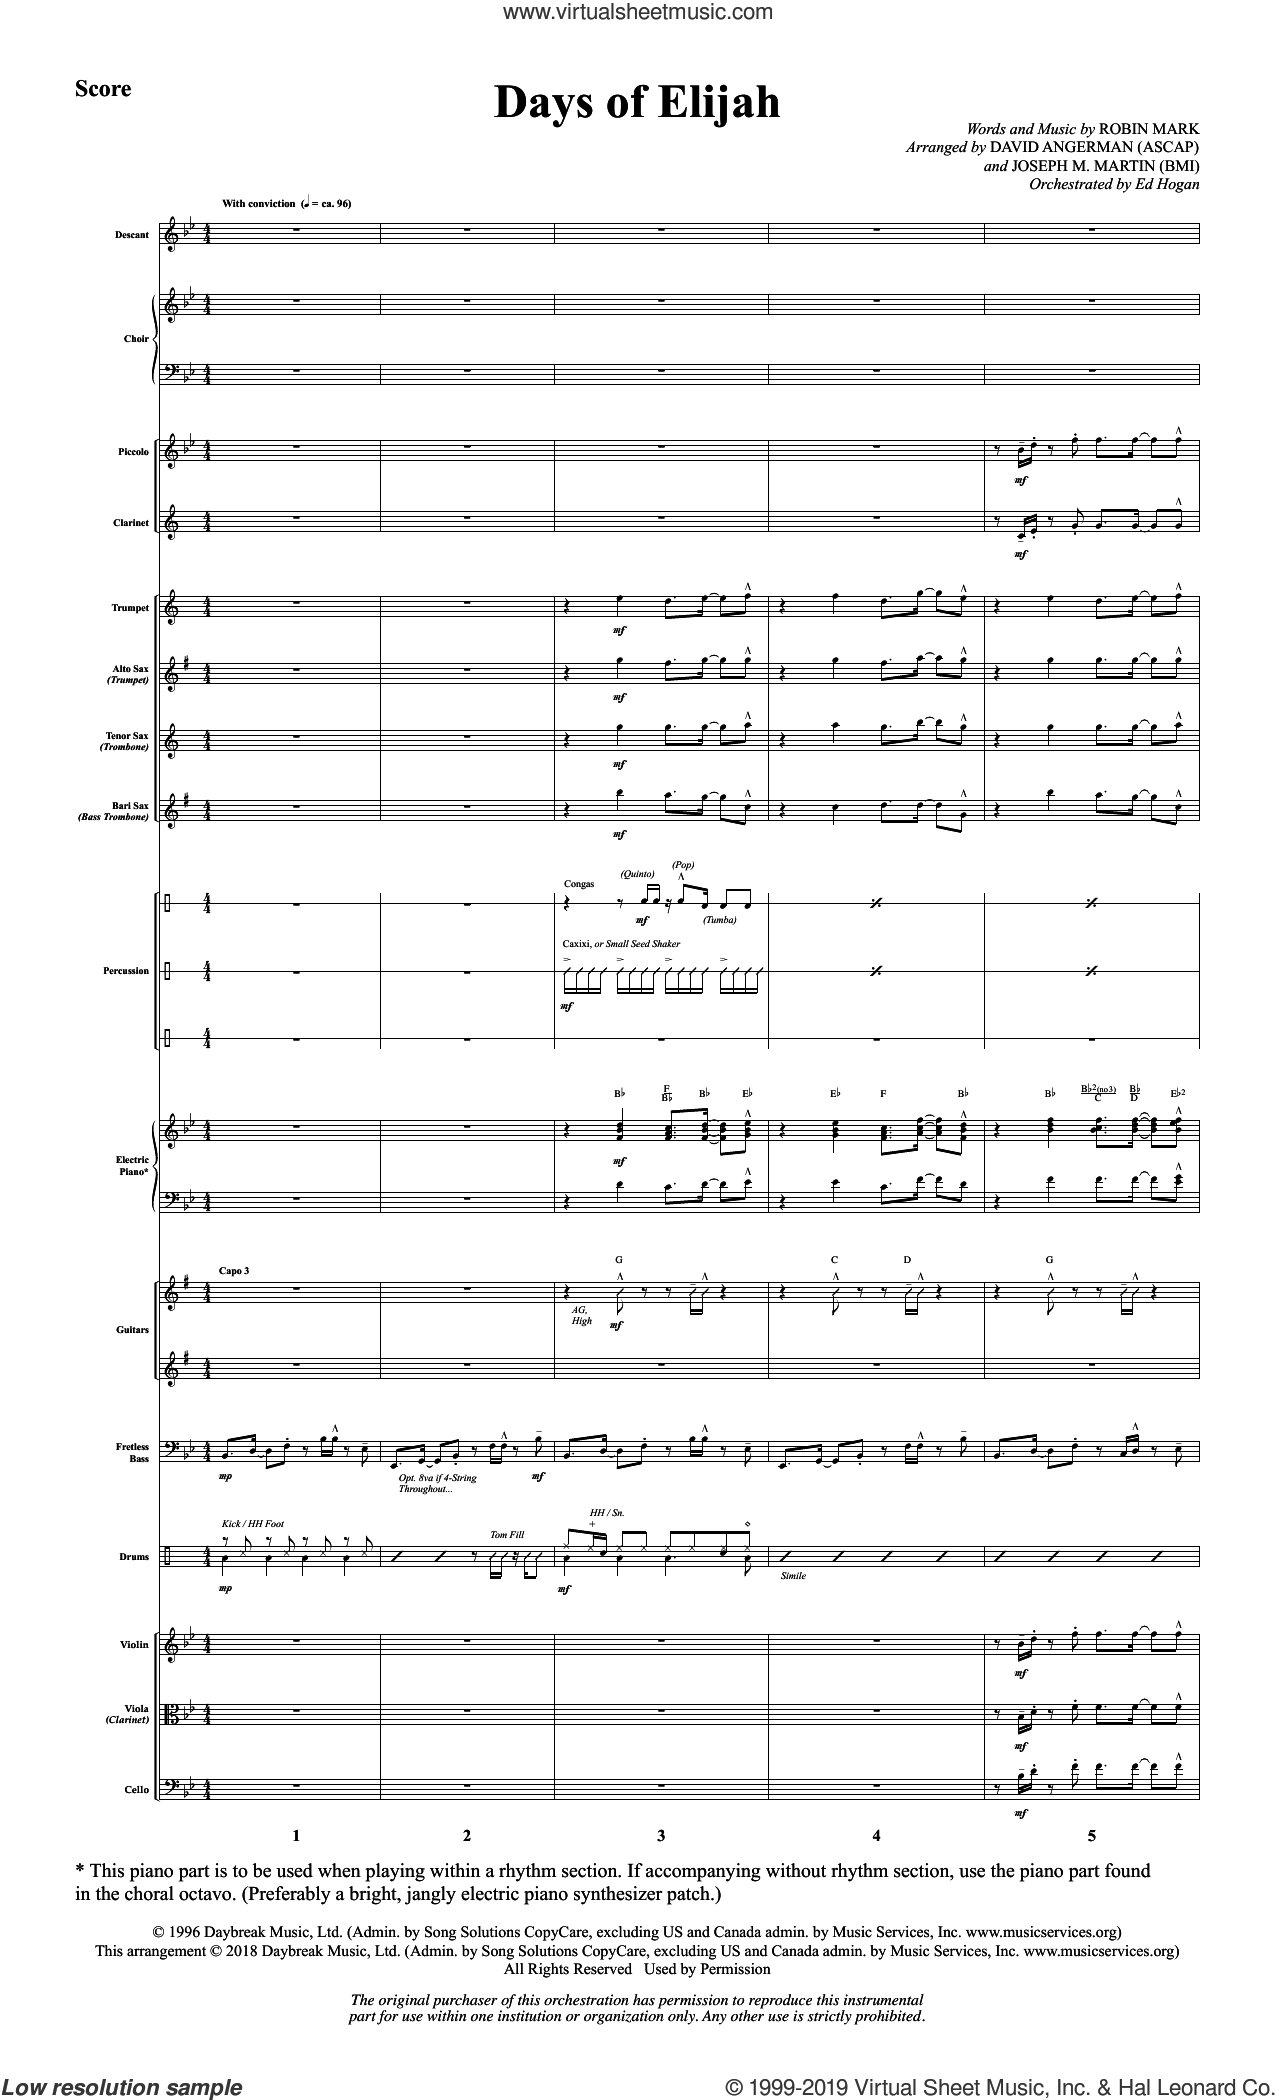 Days of Elijah (arr. David Angerman) (COMPLETE) sheet music for orchestra/band by David Angerman, Michael Barrett and Robin Mark, intermediate skill level